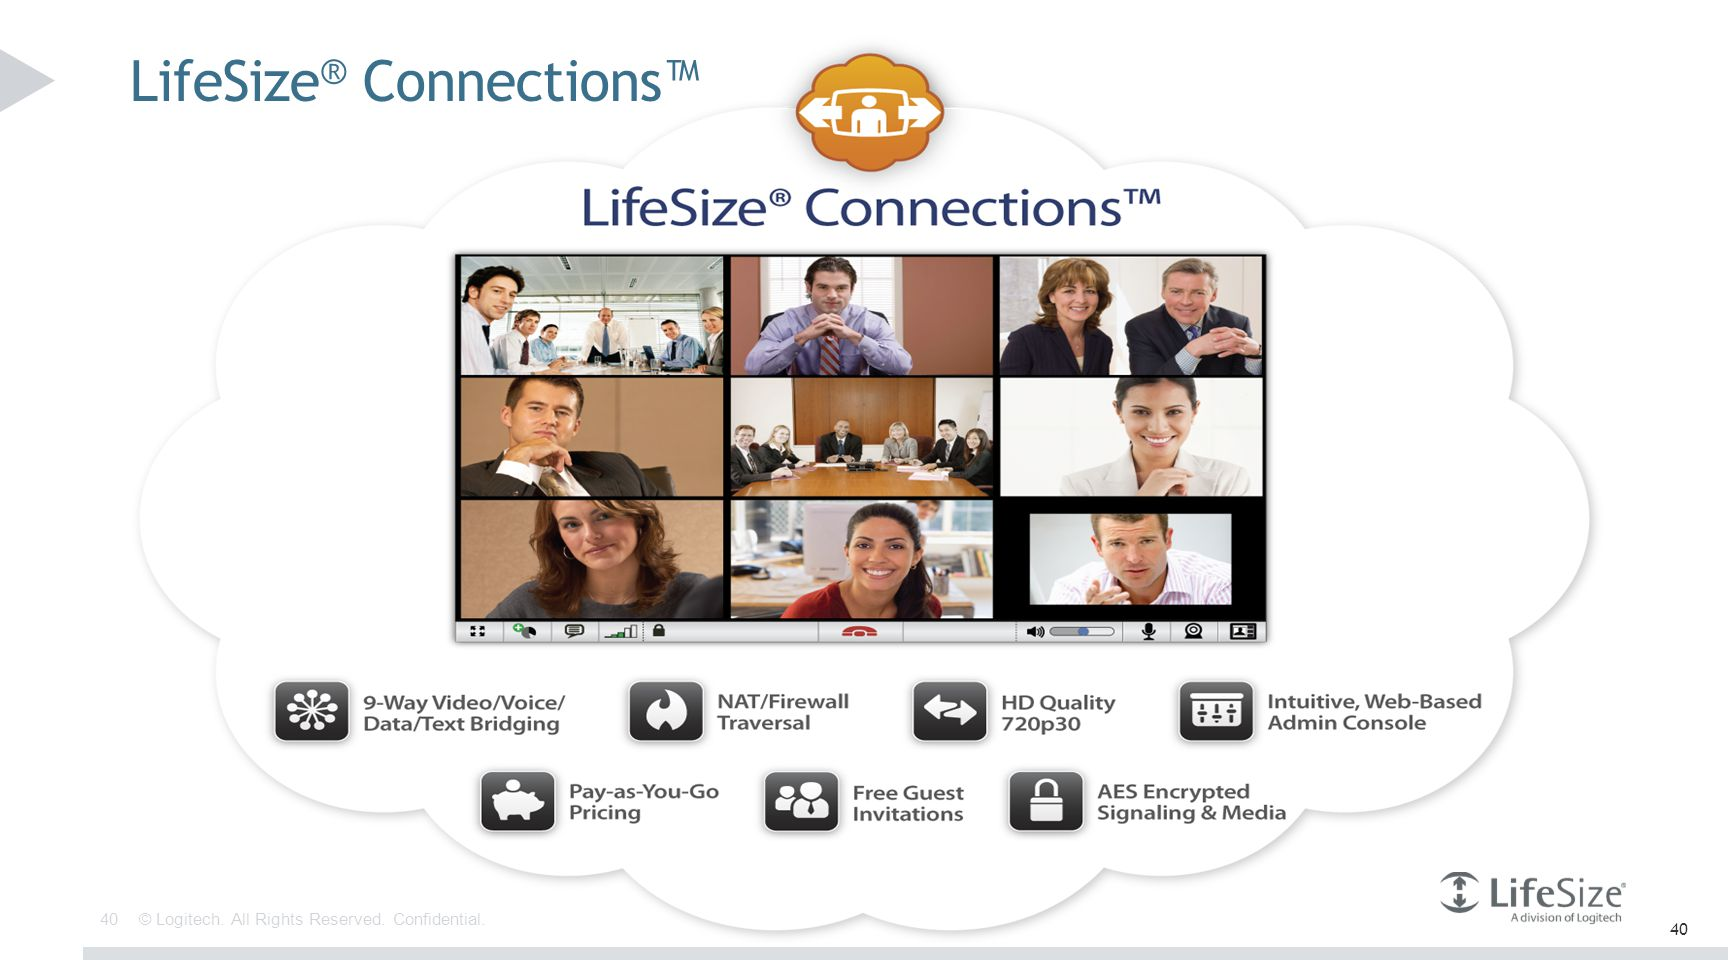 LifeSize® Connections™